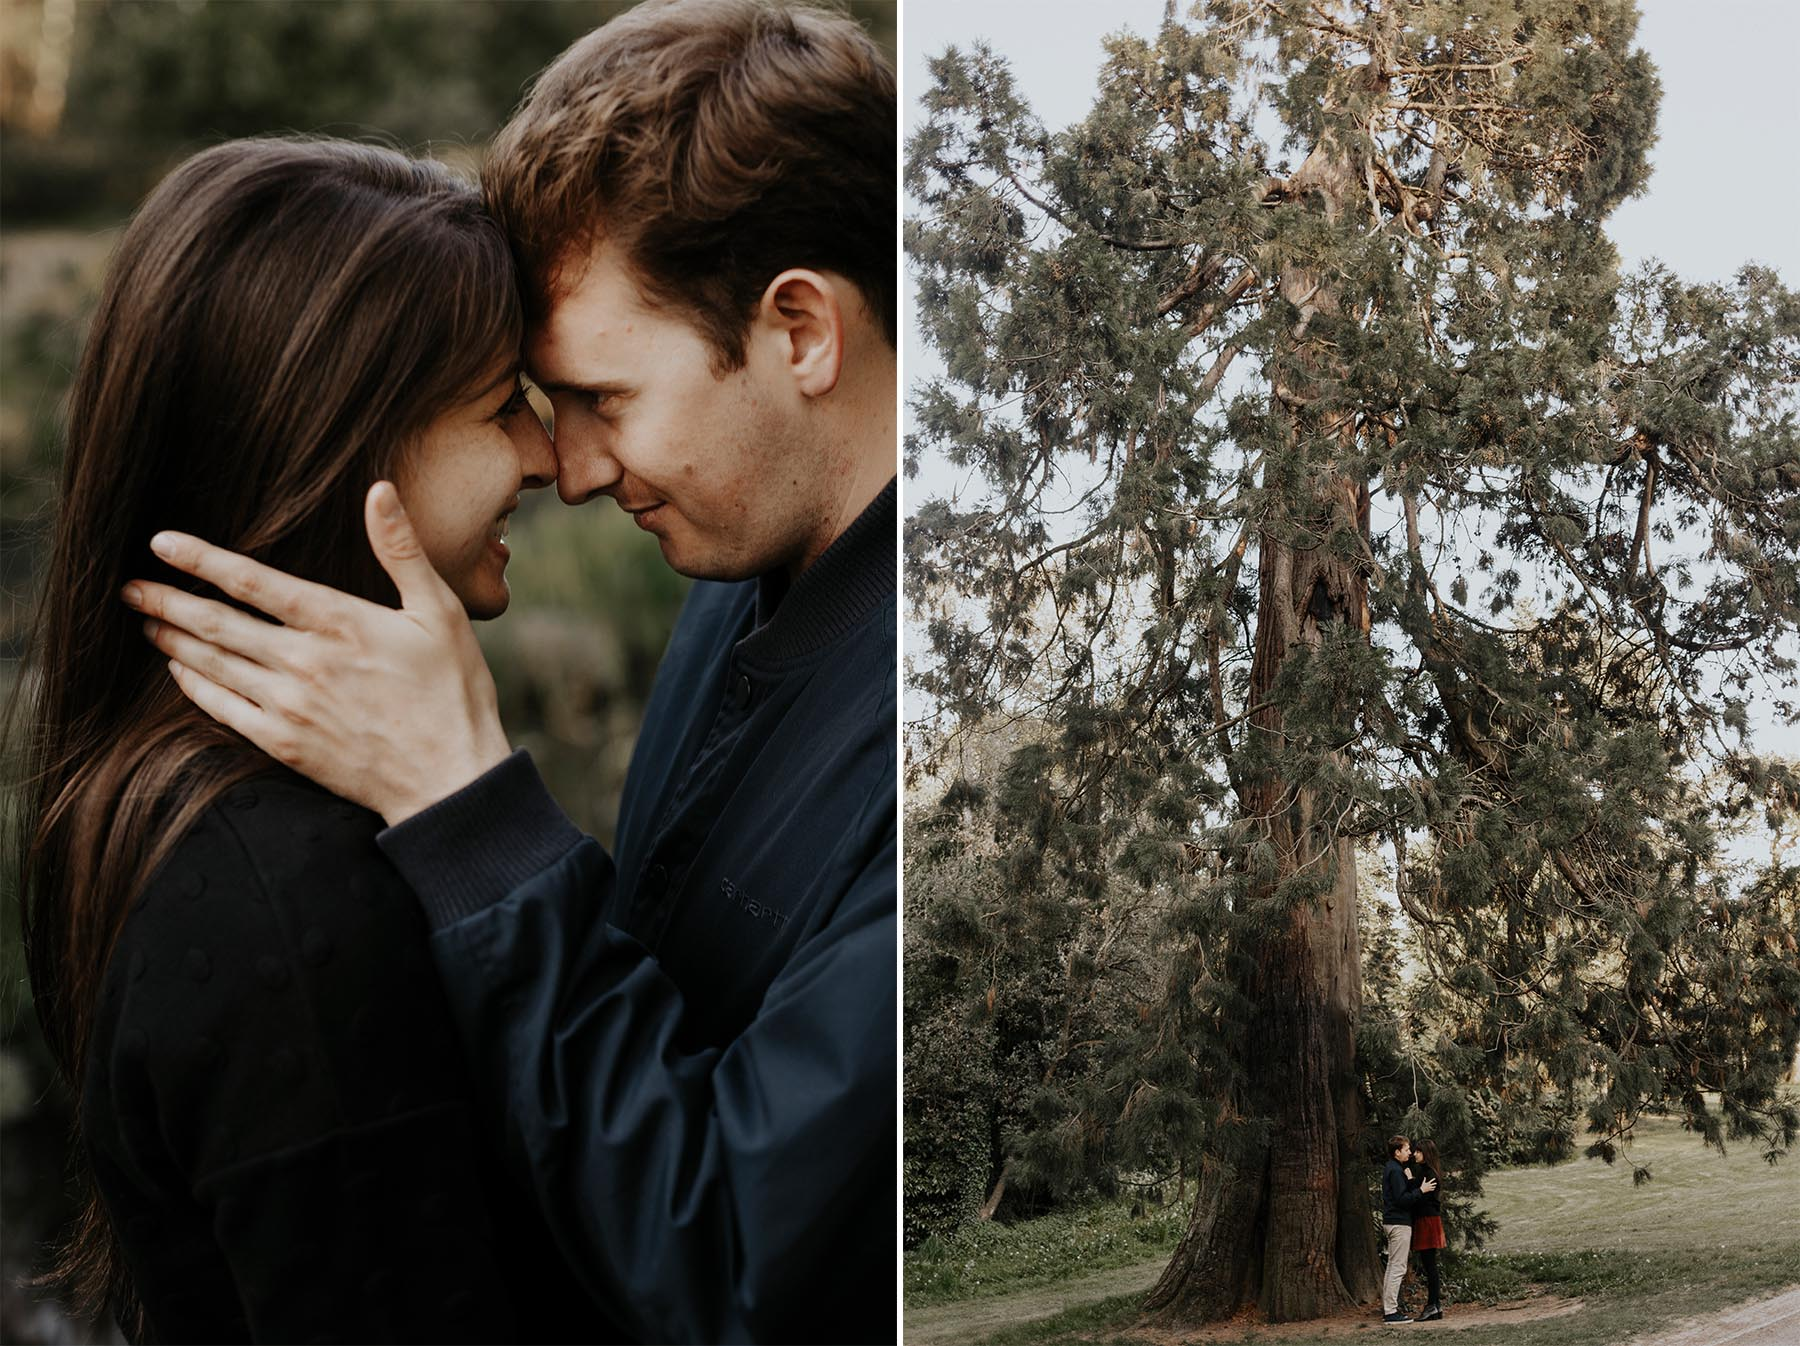 erica_felix_seance_engagement_flavie_nelly_photographe_nantes